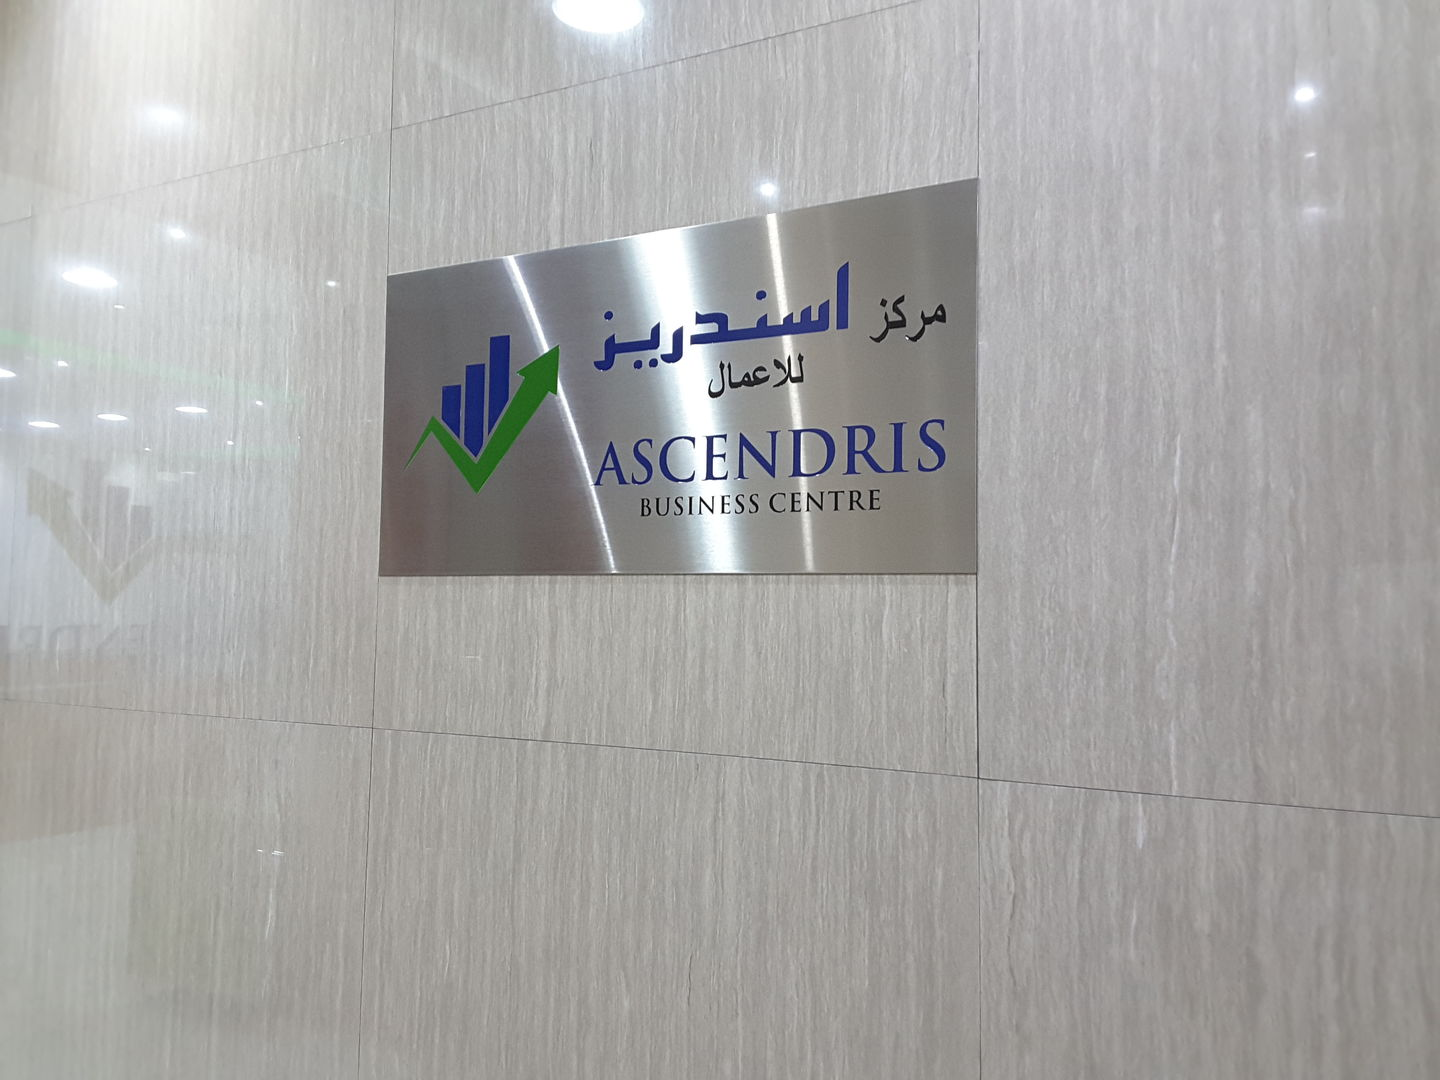 HiDubai-business-ascendris-business-centre-b2b-services-business-consultation-services-business-bay-dubai-2